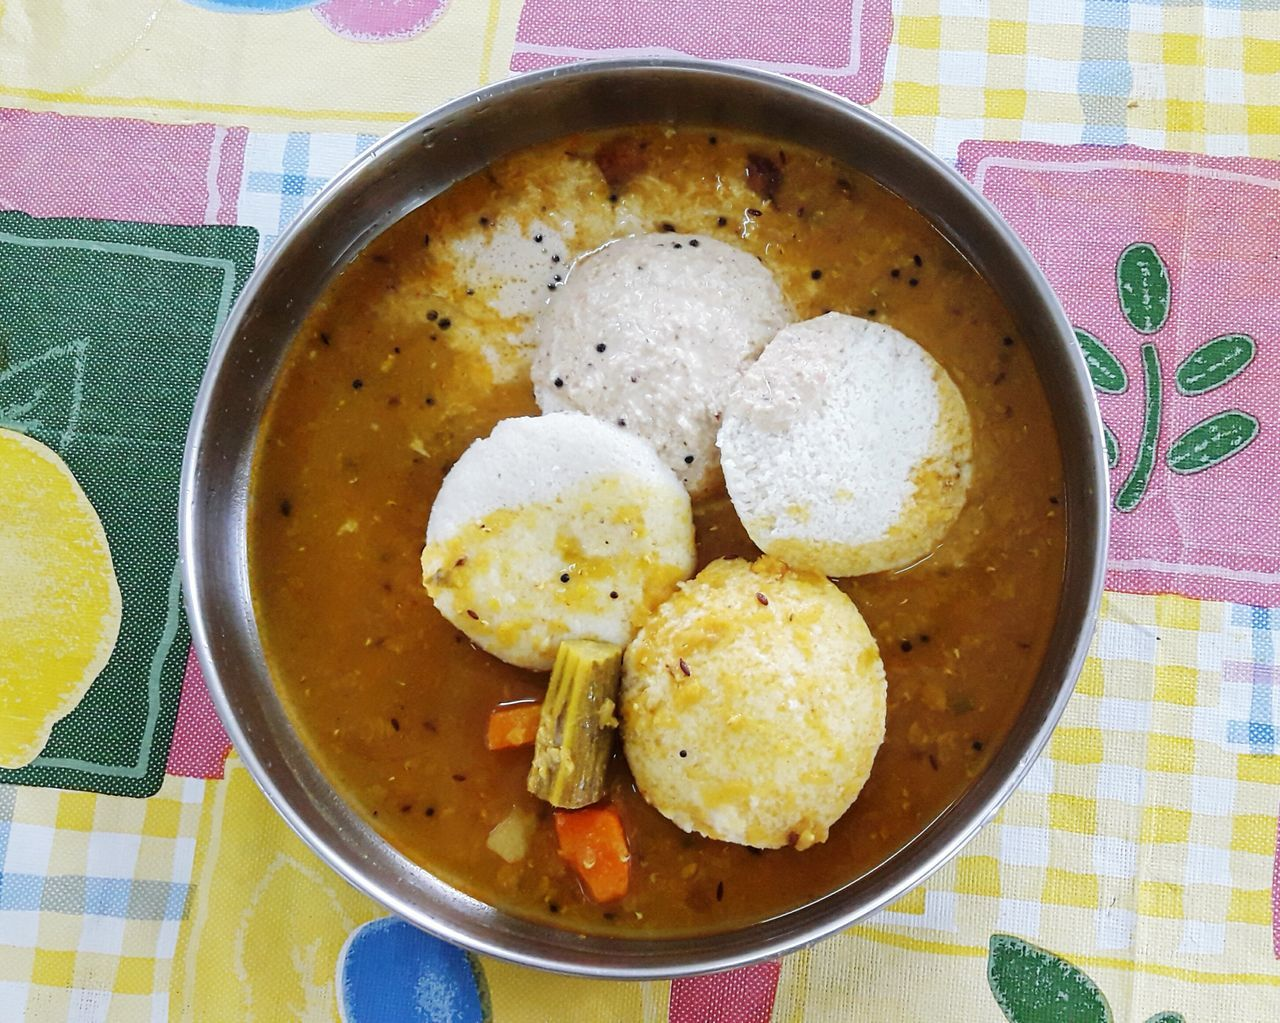 ShareTheMeal Ready-to-eat Indian Food! Idli With Sambhar And Chattni Yummy Breakfast Time!! Photo Of The Day